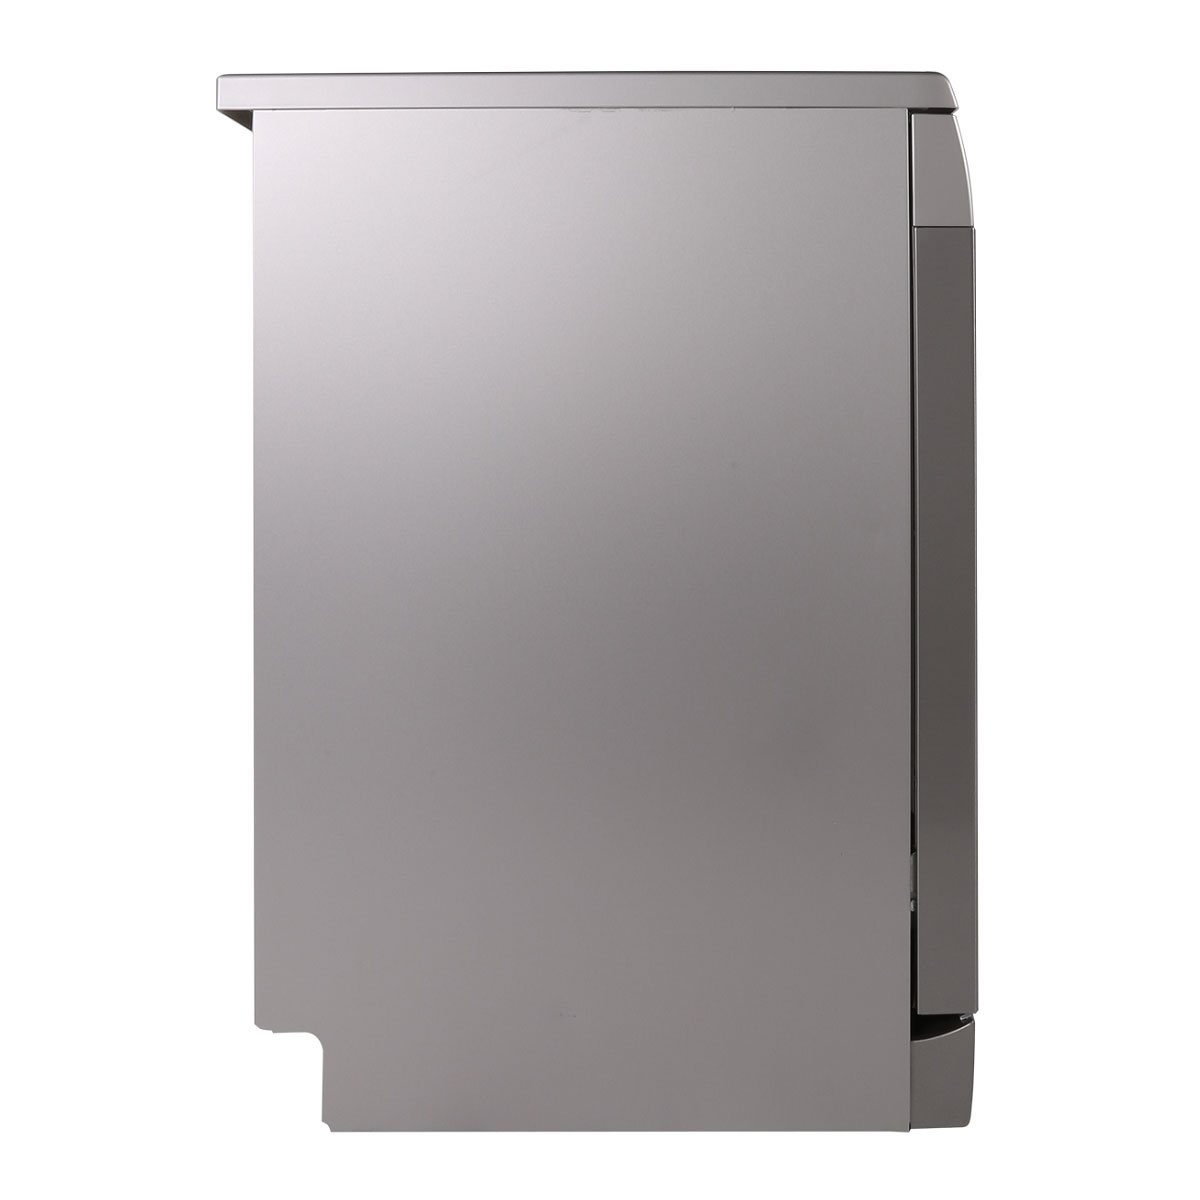 bosch sms88ti01a serie 8 freestanding dishwasher up to. Black Bedroom Furniture Sets. Home Design Ideas